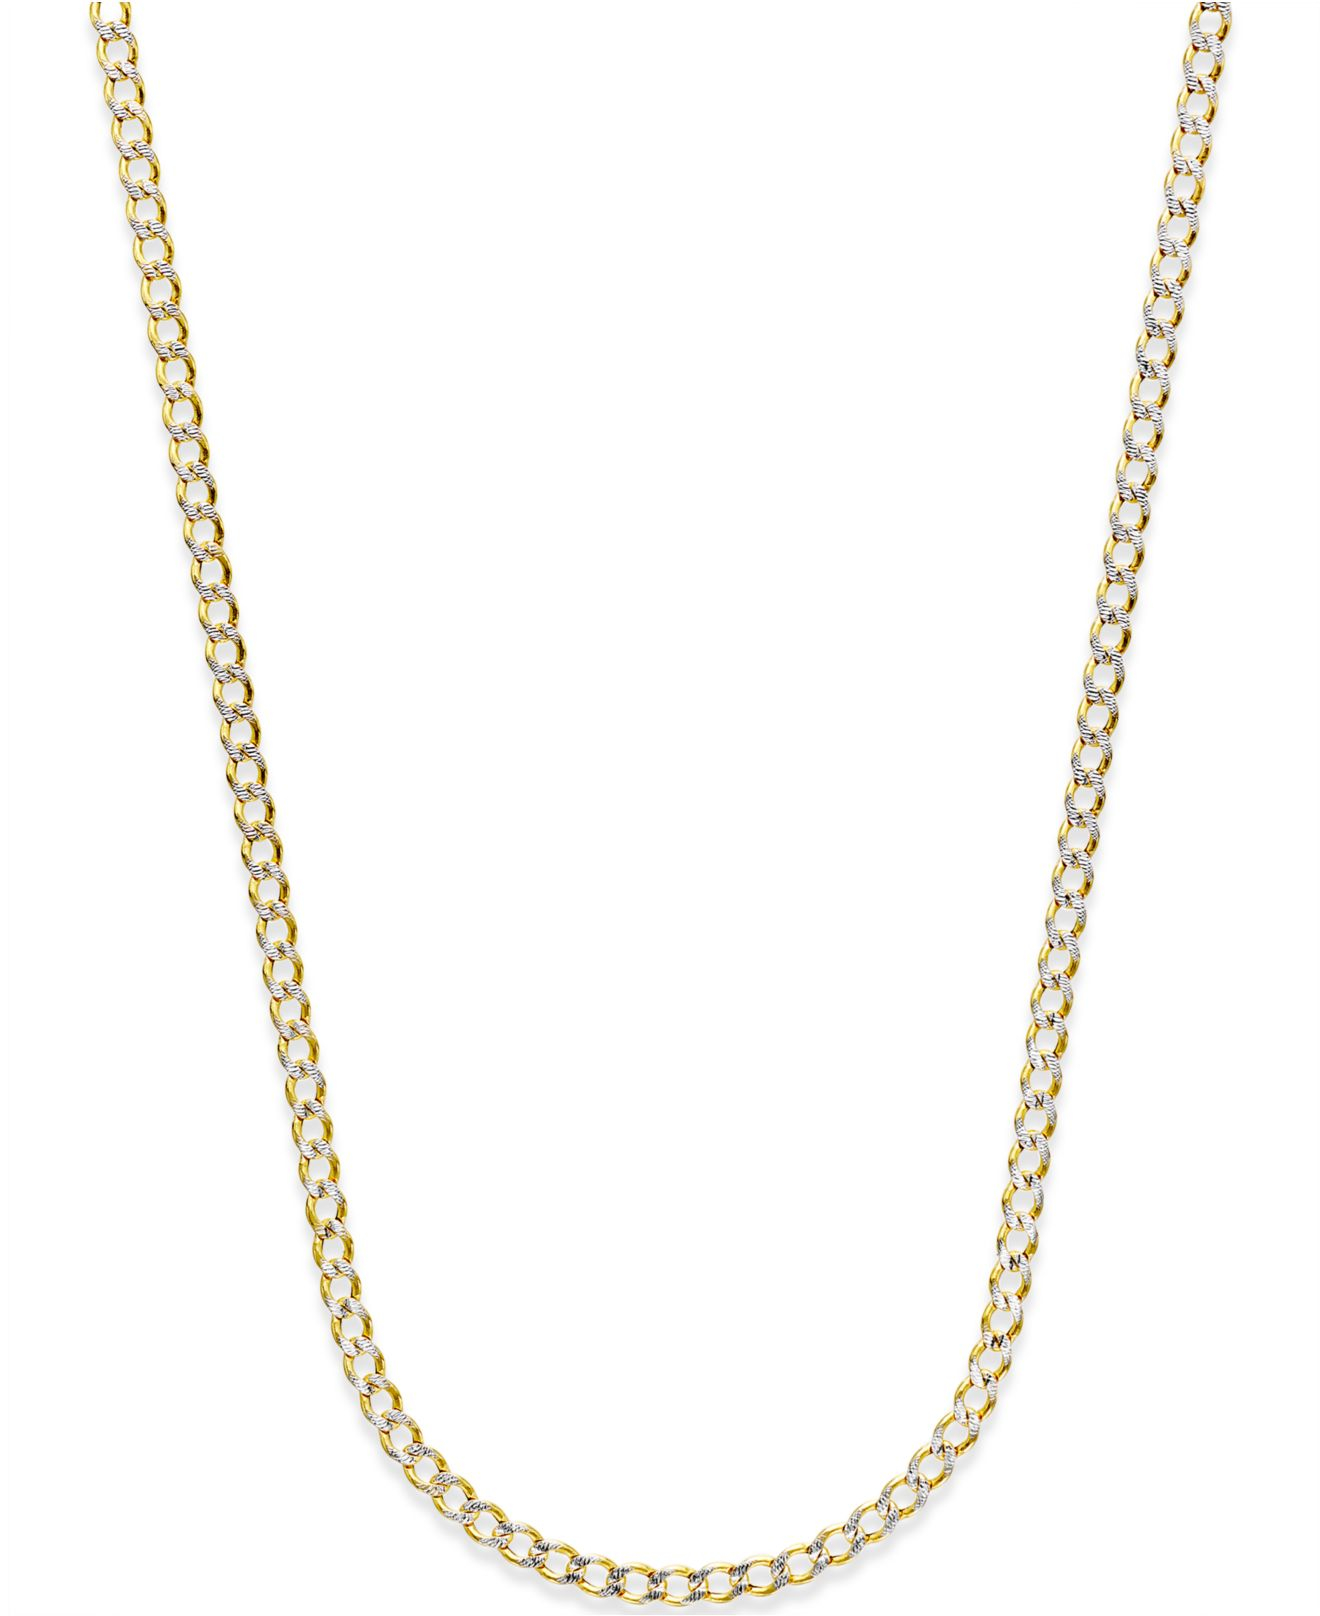 Macy S Diamond Cut Hollow Curb Link Chain In 14k Gold In